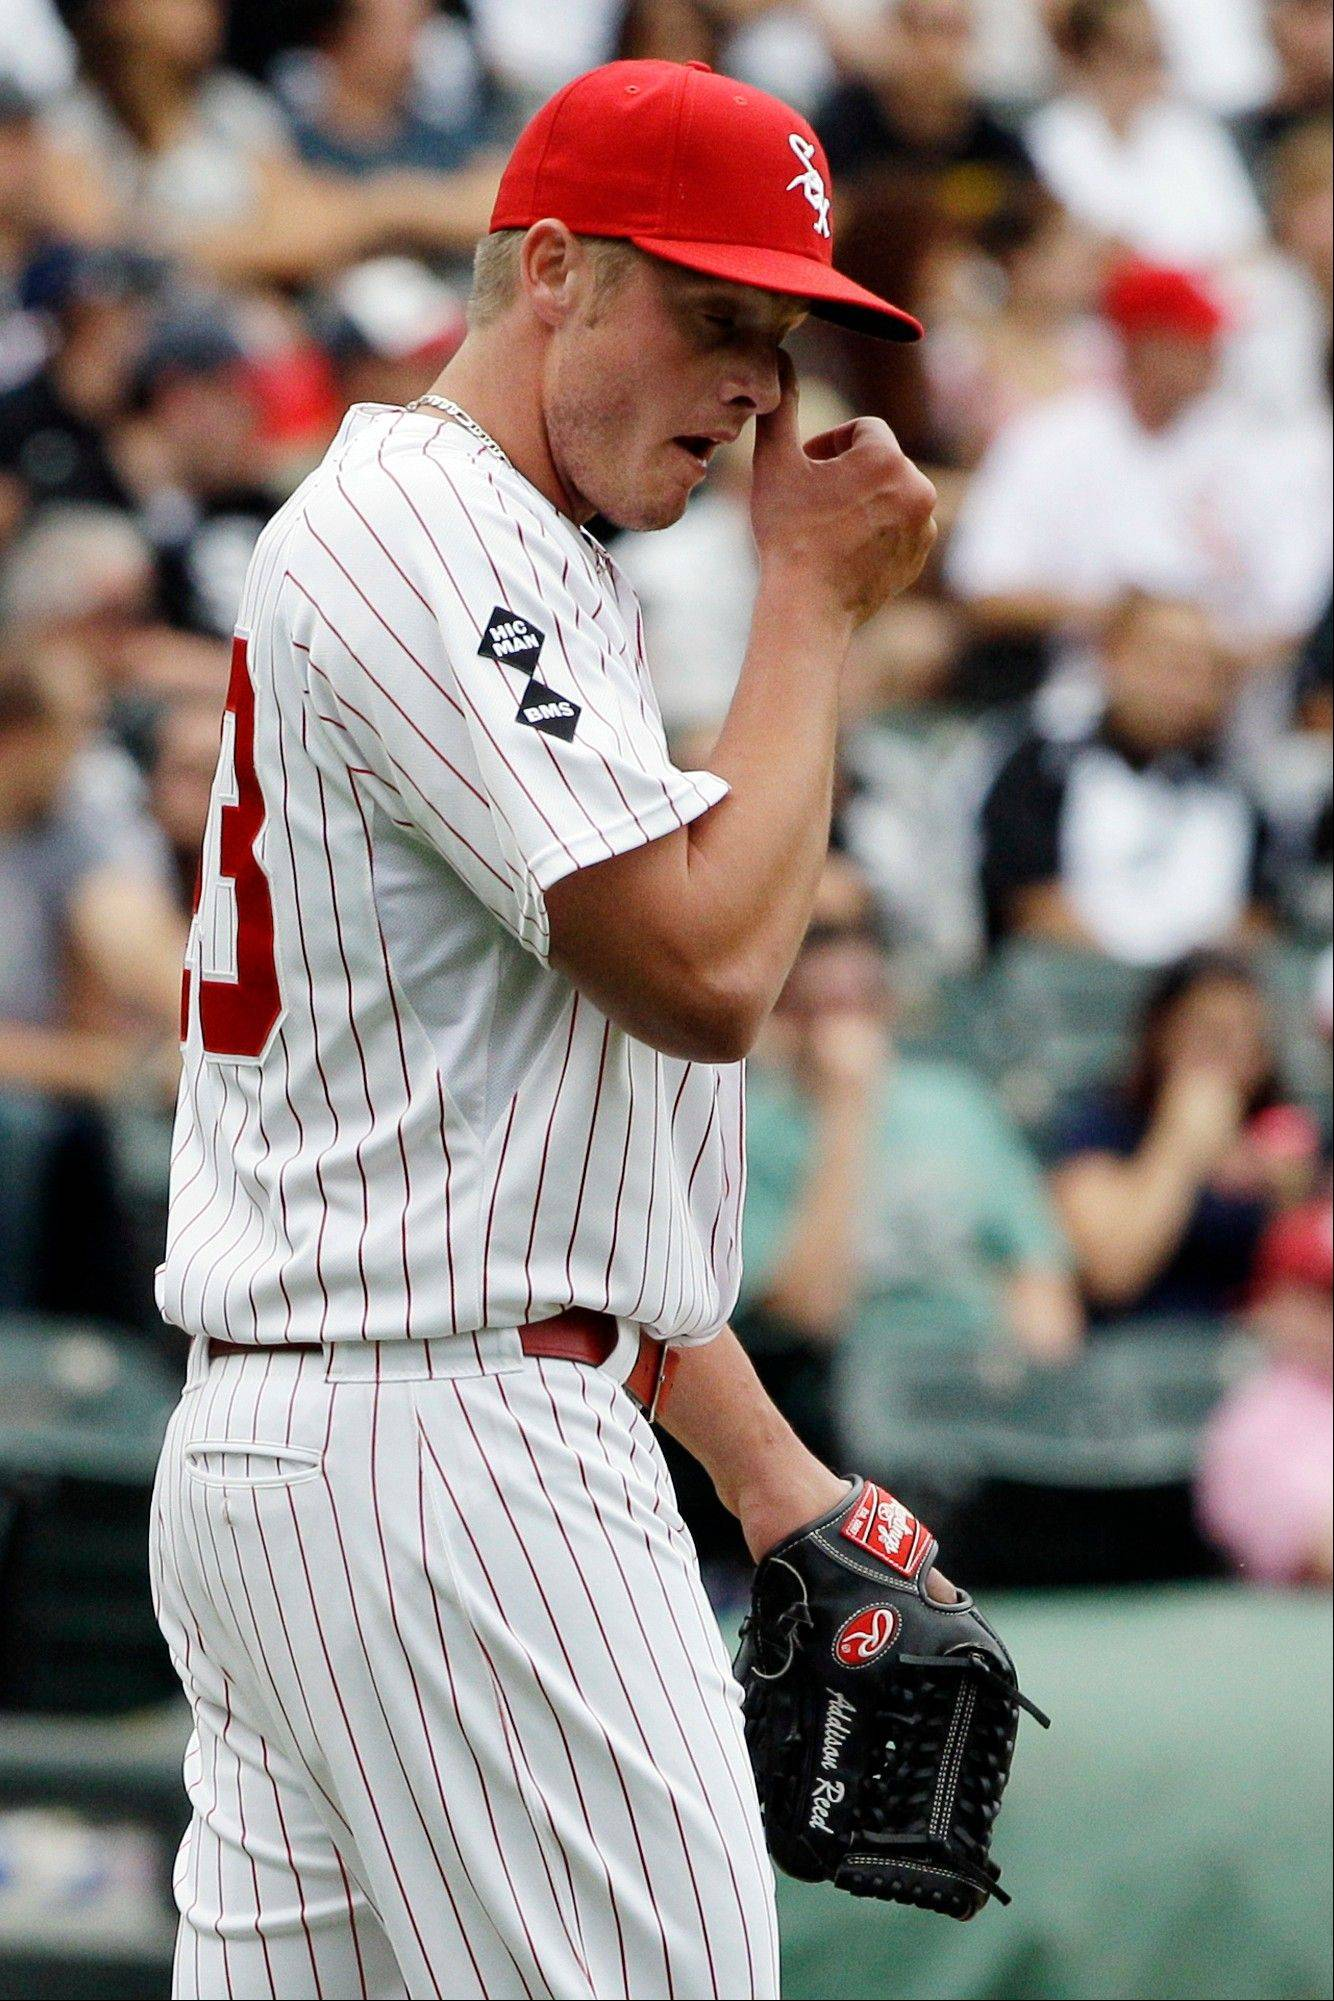 White Sox closer Addison Reed wipes his eyes after Oakland Athletics' Derek Norris hit a solo home run during the ninth inning of a baseball game in Chicago, Sunday, Aug. 12, 2012. The White Sox won 7-3.